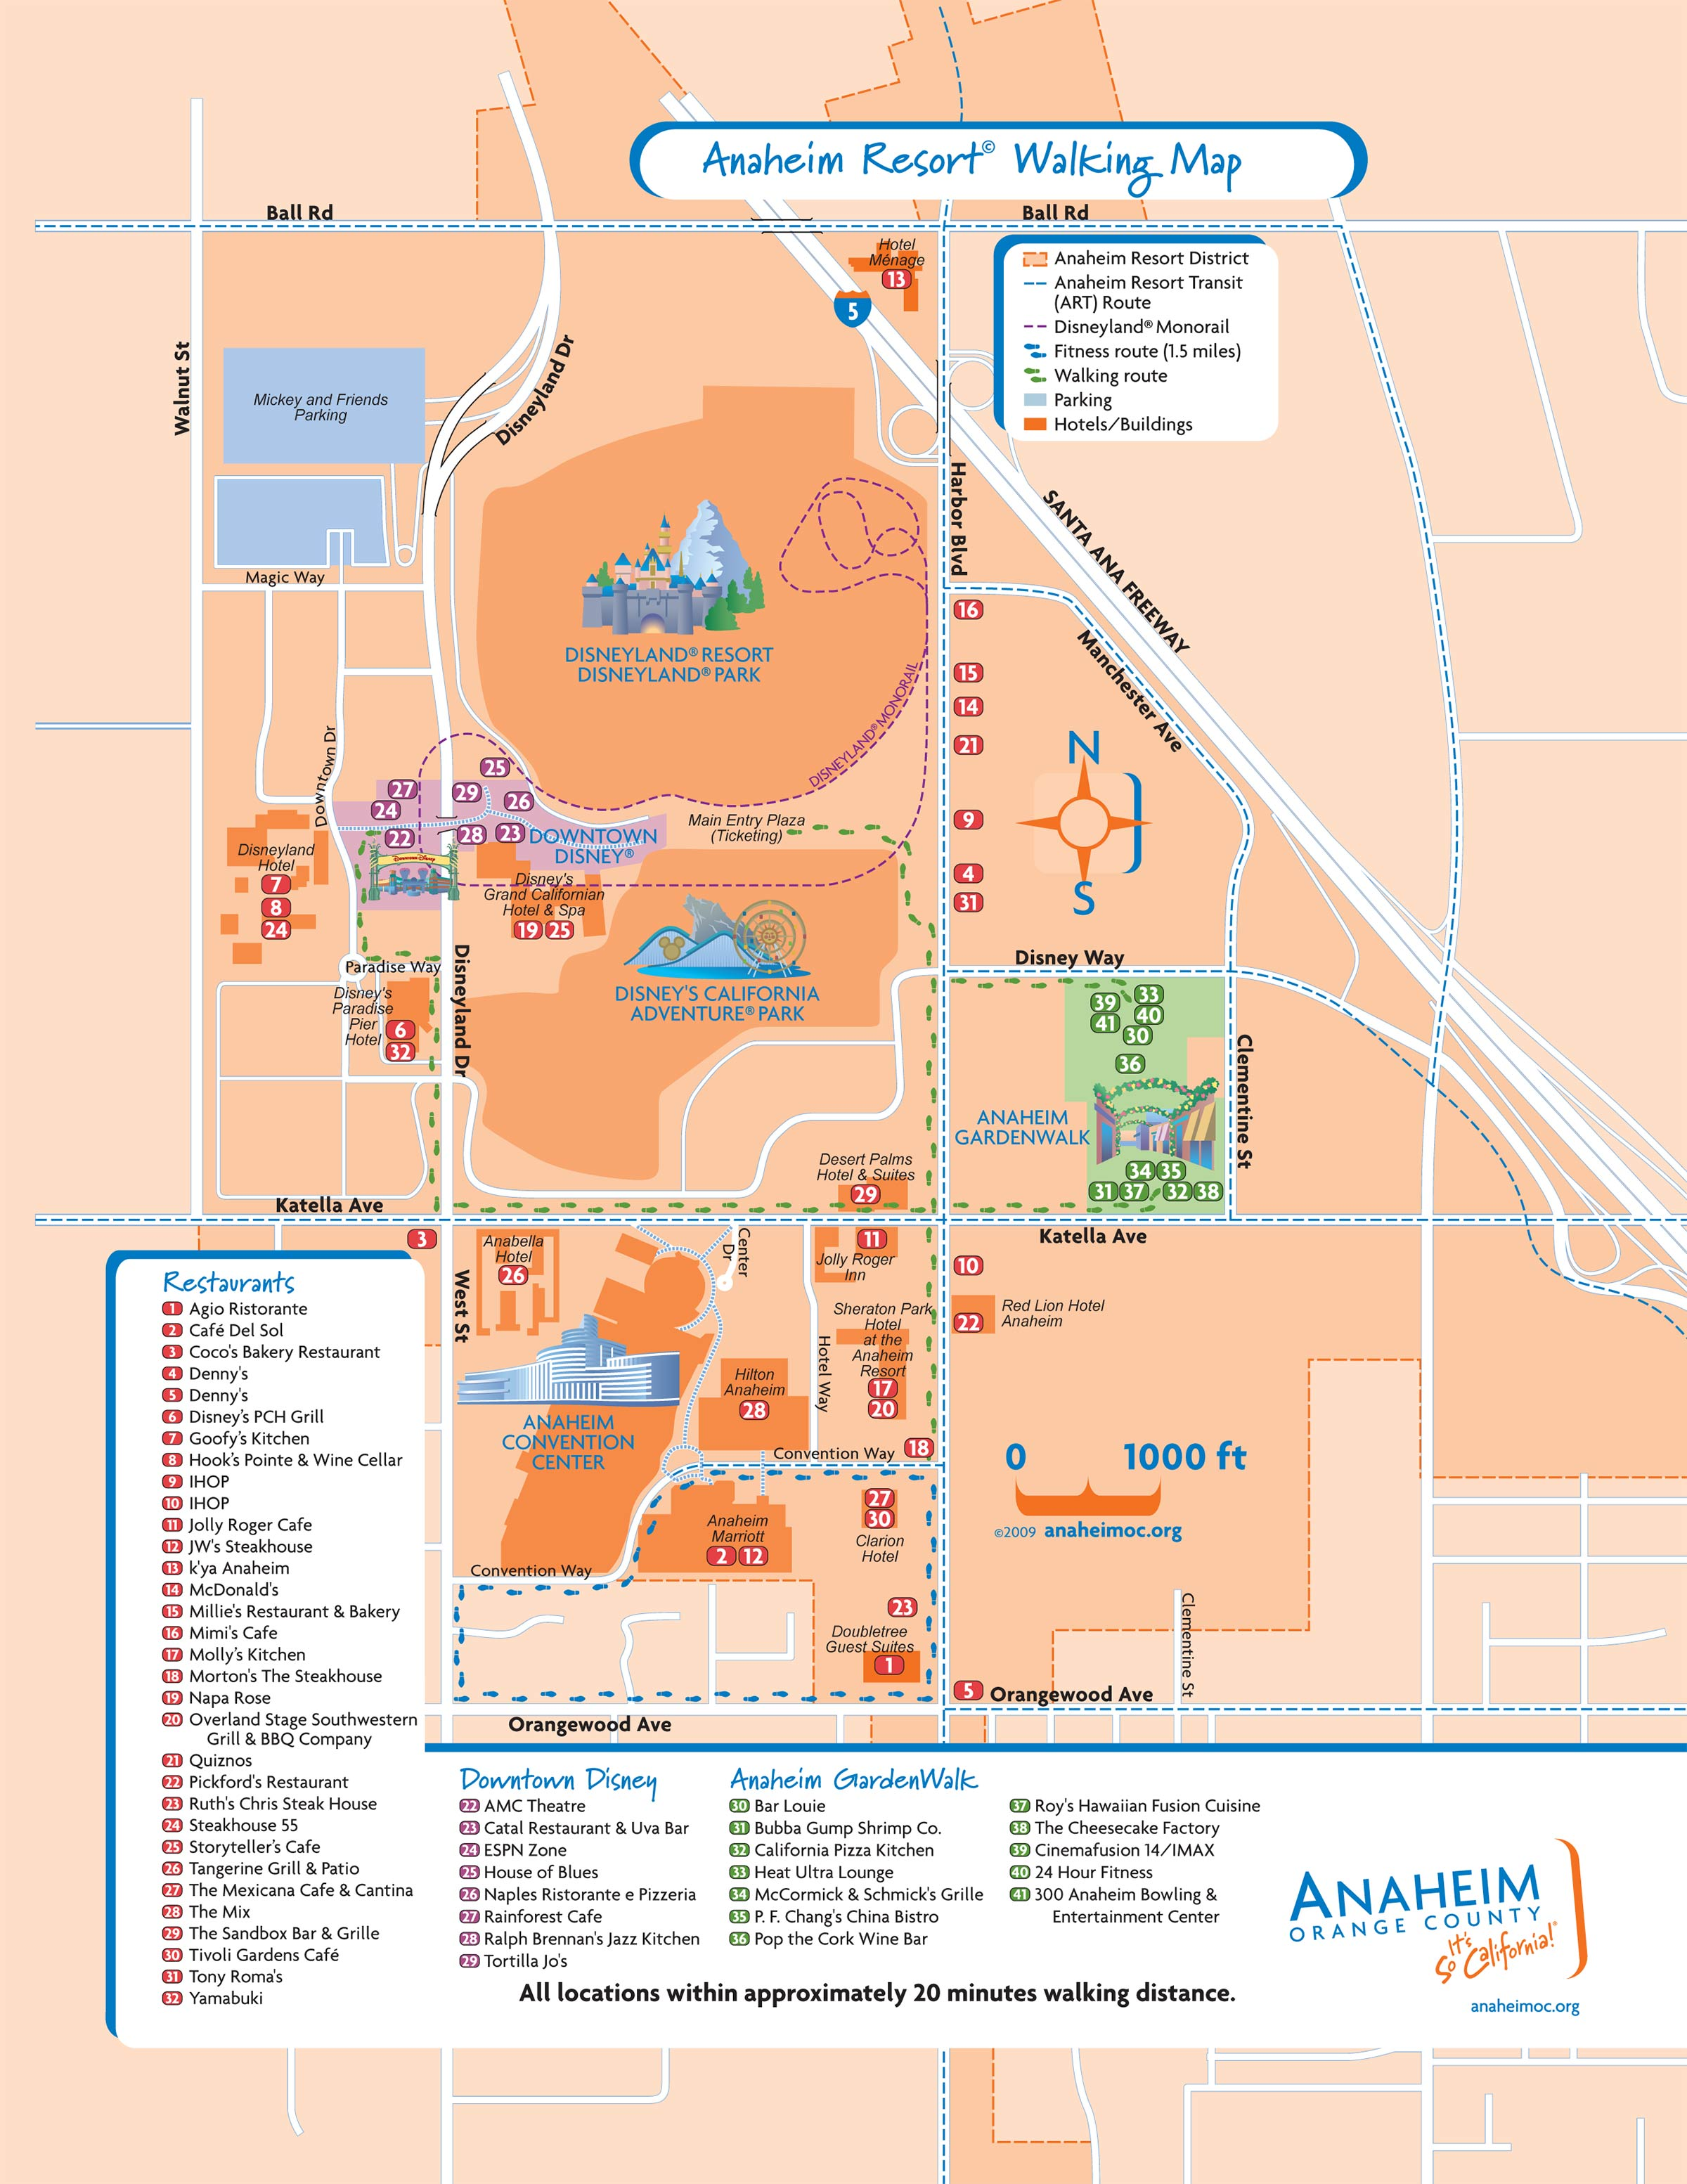 Anaheim Marriott - ePLANNERTOOLKIT on map of holiday inn orange lake, map of hotels chicago, map of disney hotels anaheim, map of amtrak anaheim station, map of duval street hotels, map of pittsburgh hotels, map of asheville hotels, map of downtown disney in anaheim, map of hotels san juan puerto rico, weather in anaheim, map of orange lake resort orlando, map of downtown denver hotels, map of disneyland in anaheim, map of disneyland area hotels, hilton in anaheim, map of hotels california, map of louisville hotels, map of anaheim near disneyland, map of big bear lake hotels, map of amsterdam hotels,